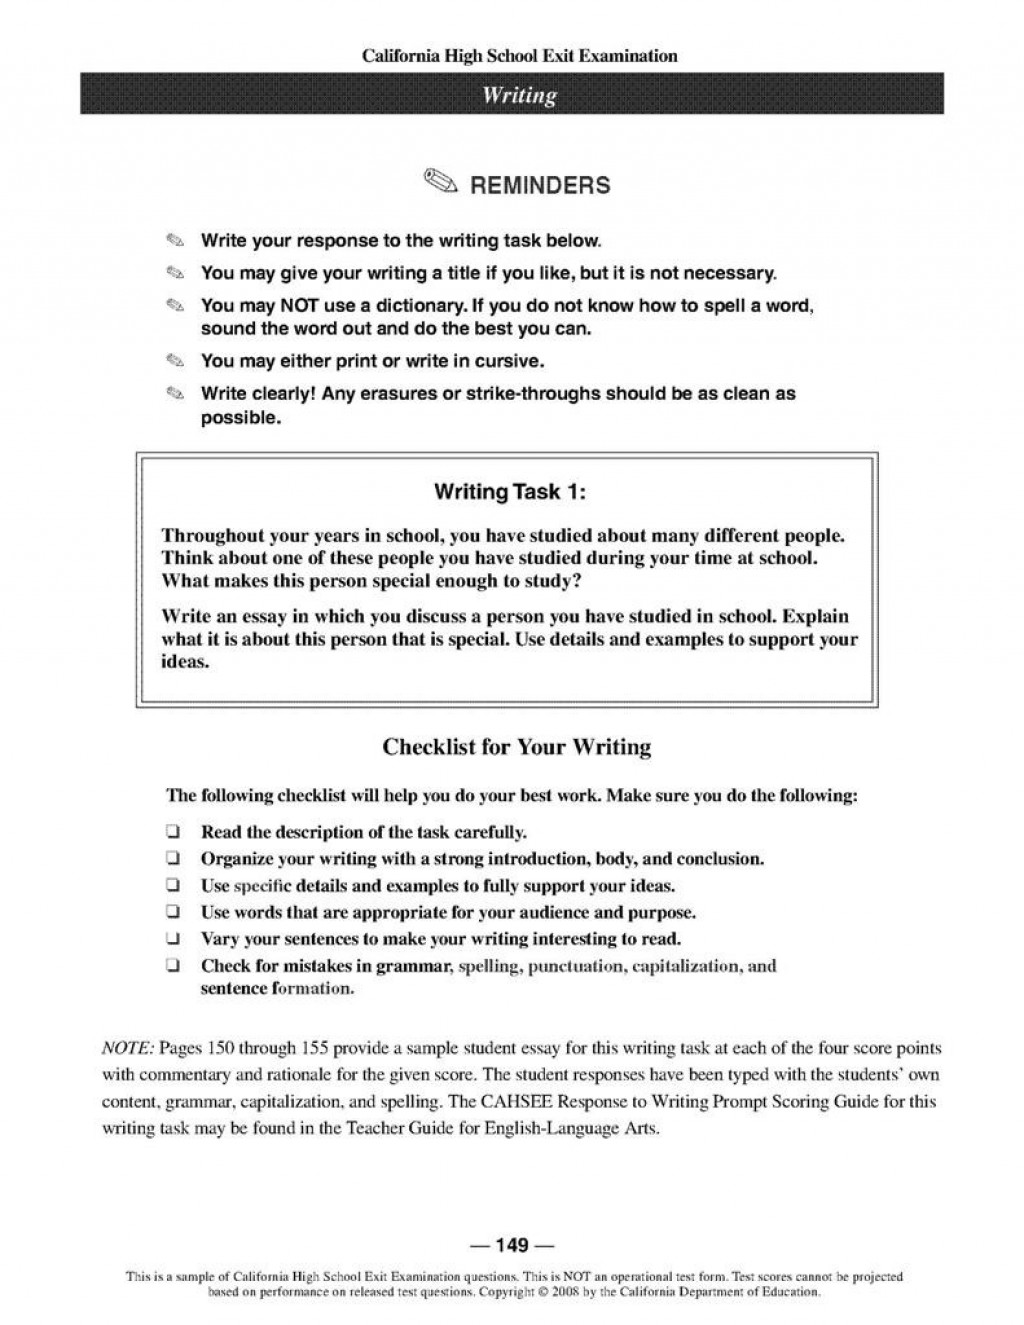 015 Essay Writing Practice Cbest Prompts How To Write With Tsi Unusual App Online For Upsc Worksheets Pdf Large